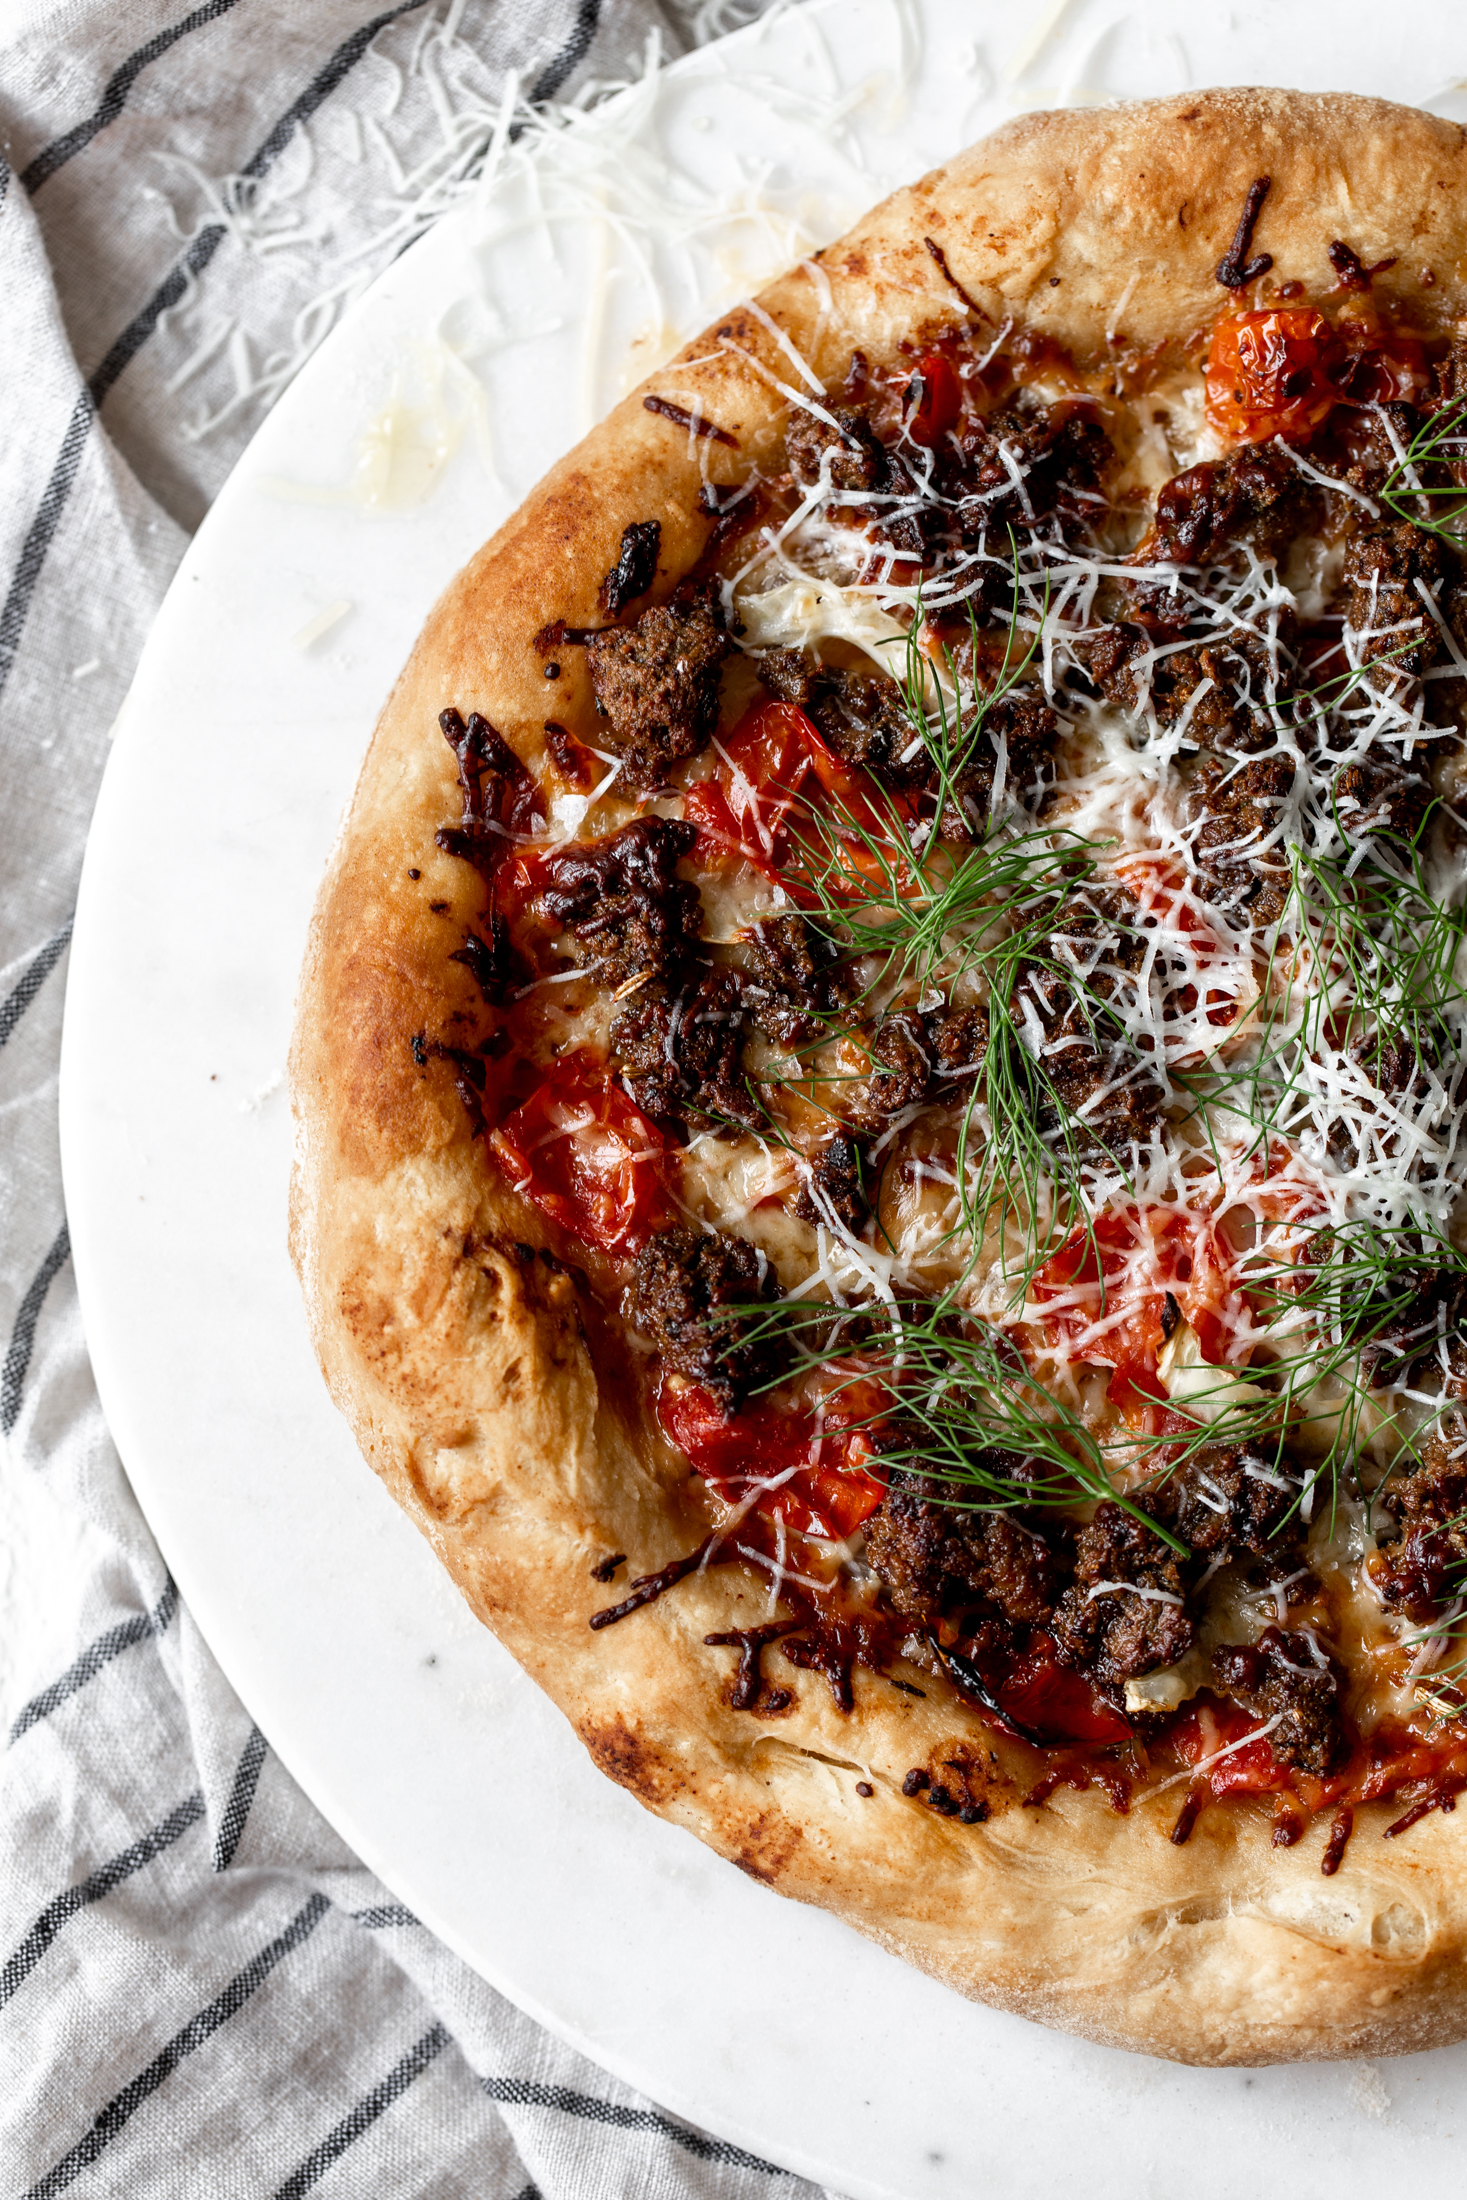 American Lamb Sausage Pizza with Confit Tomatoes and Fennelrecipe from Cooking with Cocktail Rings